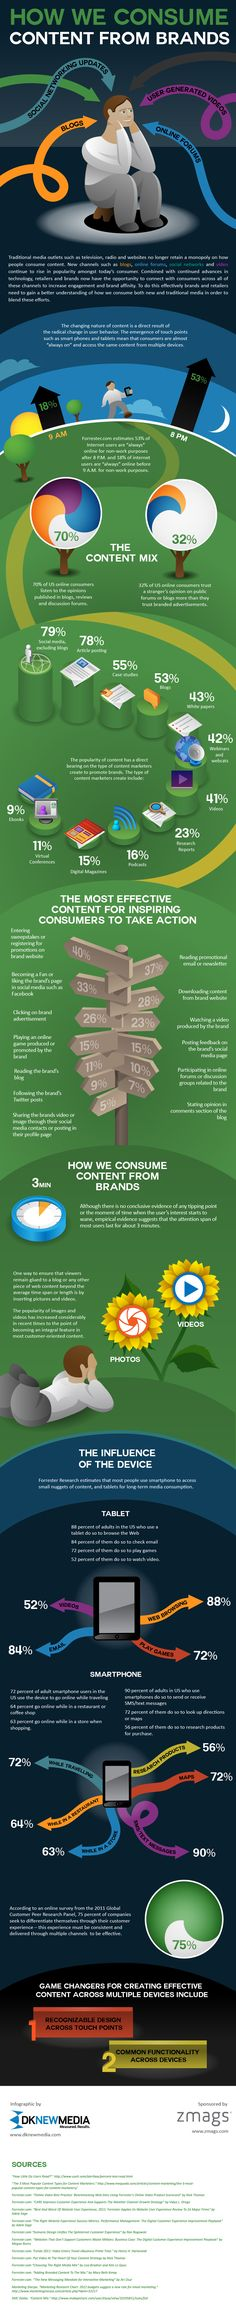 """Great info on the intersection of consumers, content and brands in """"How we consume content from brands.""""  #infographic #brands #content"""